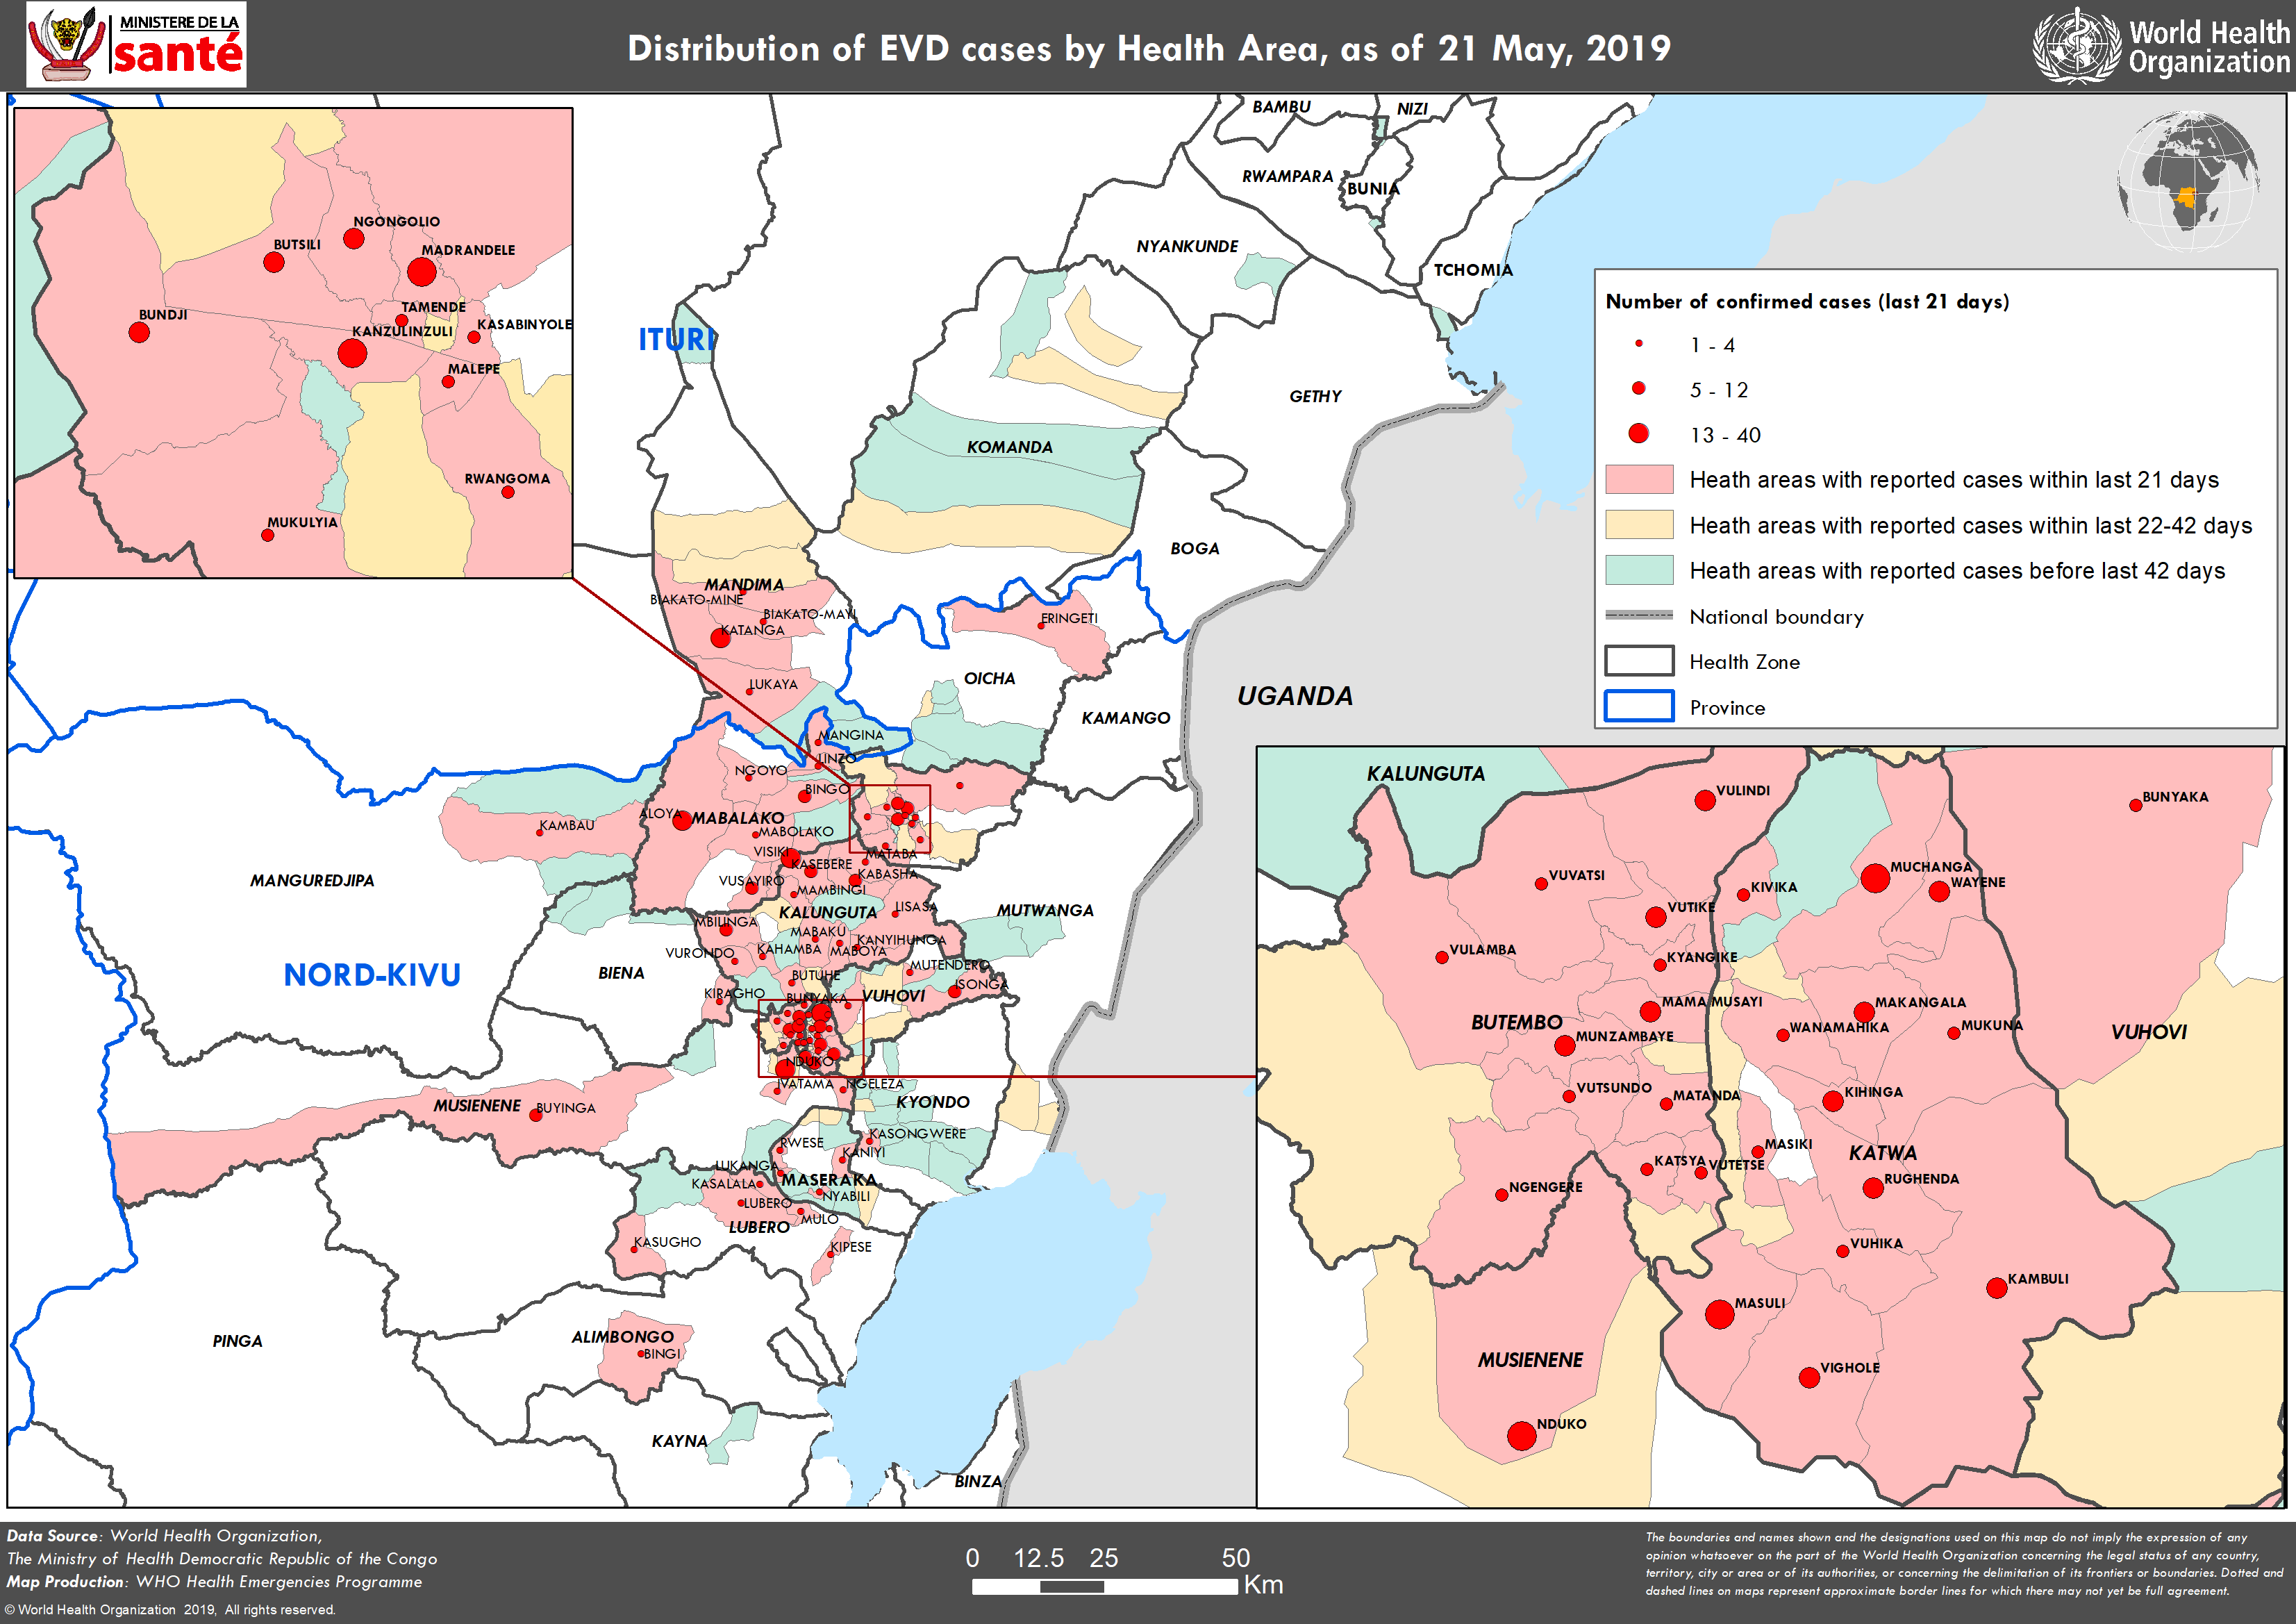 Confirmed and probable Ebola virus disease cases by health area, North Kivu and Ituri provinces, Democratic Republic of the Congo, data as of 21 May 2019